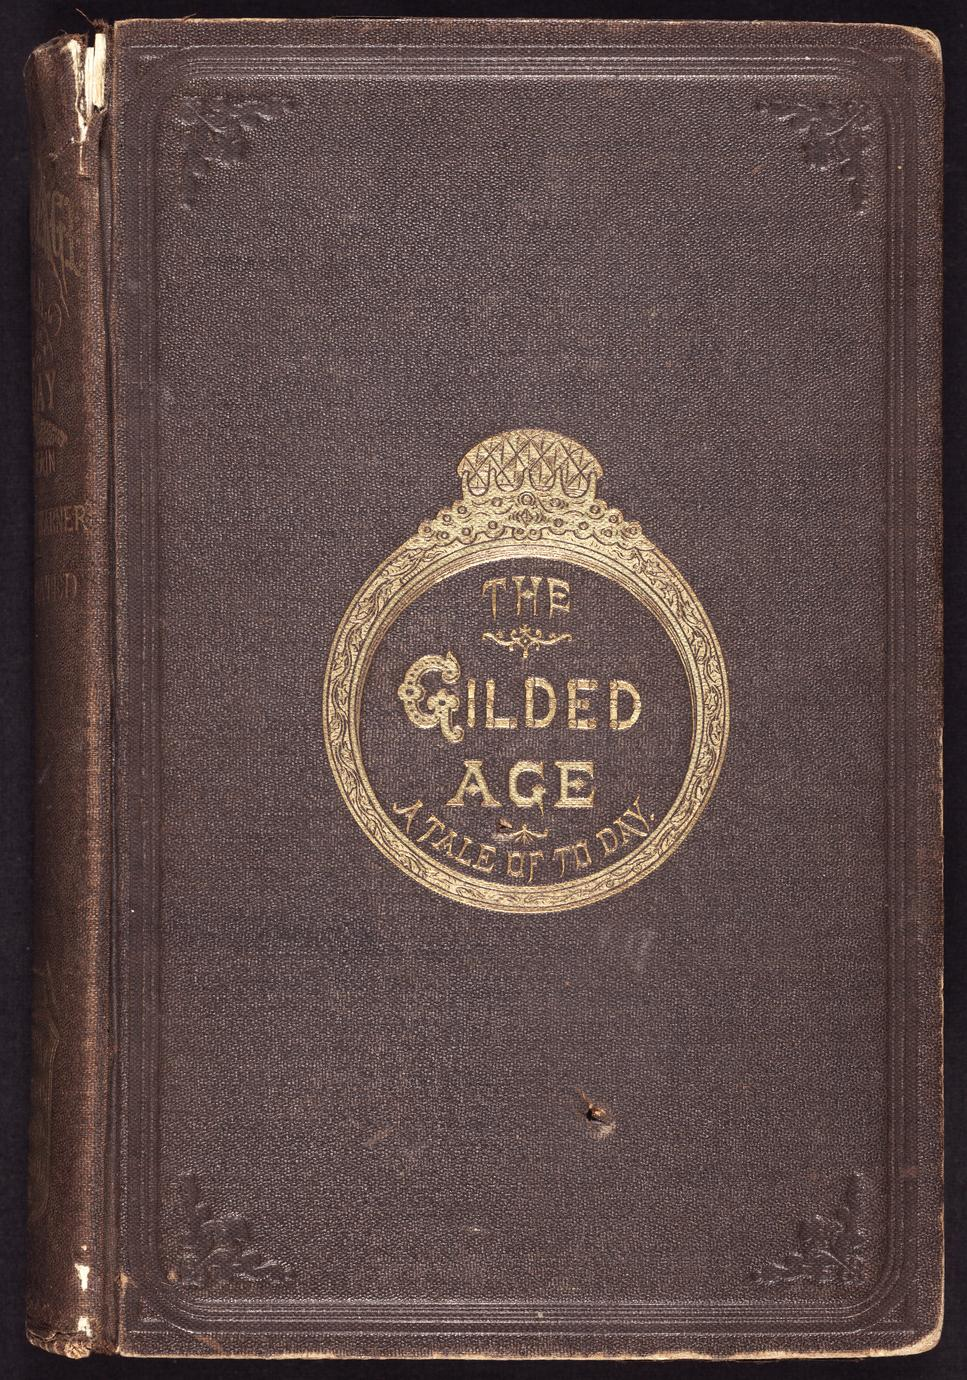 The gilded age : a tale of to-day (1 of 2)